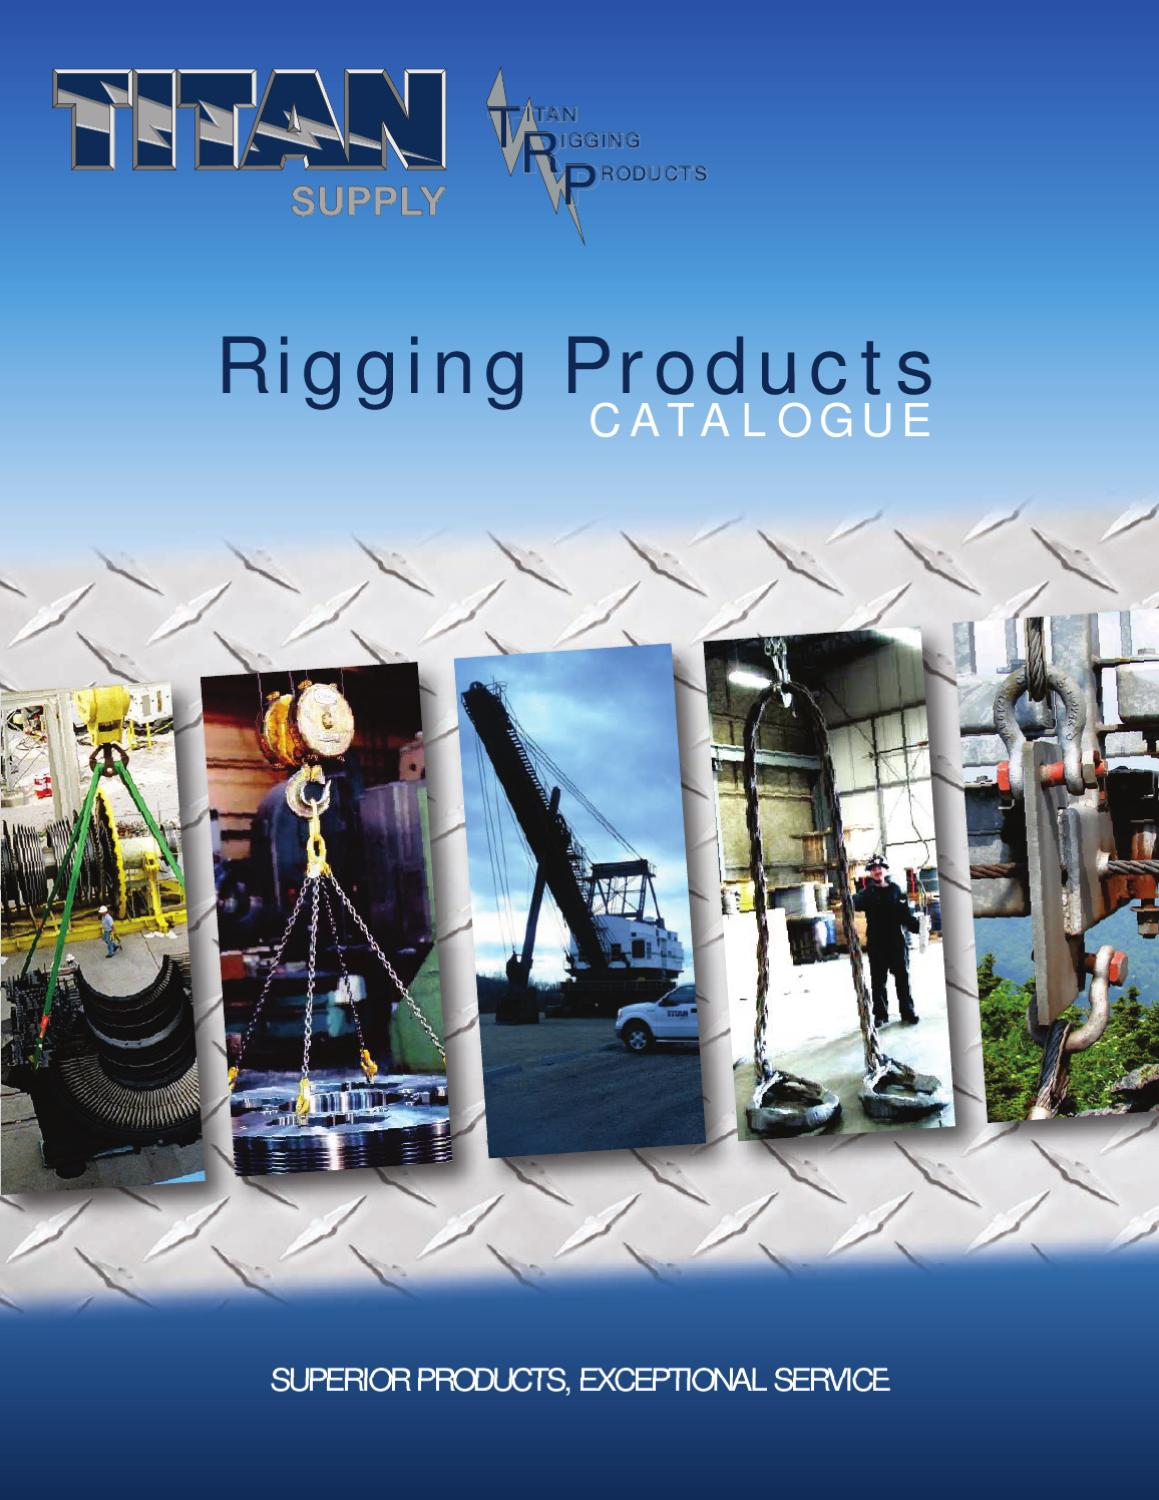 titan supply rigging products catalogue by teresa brown issuu